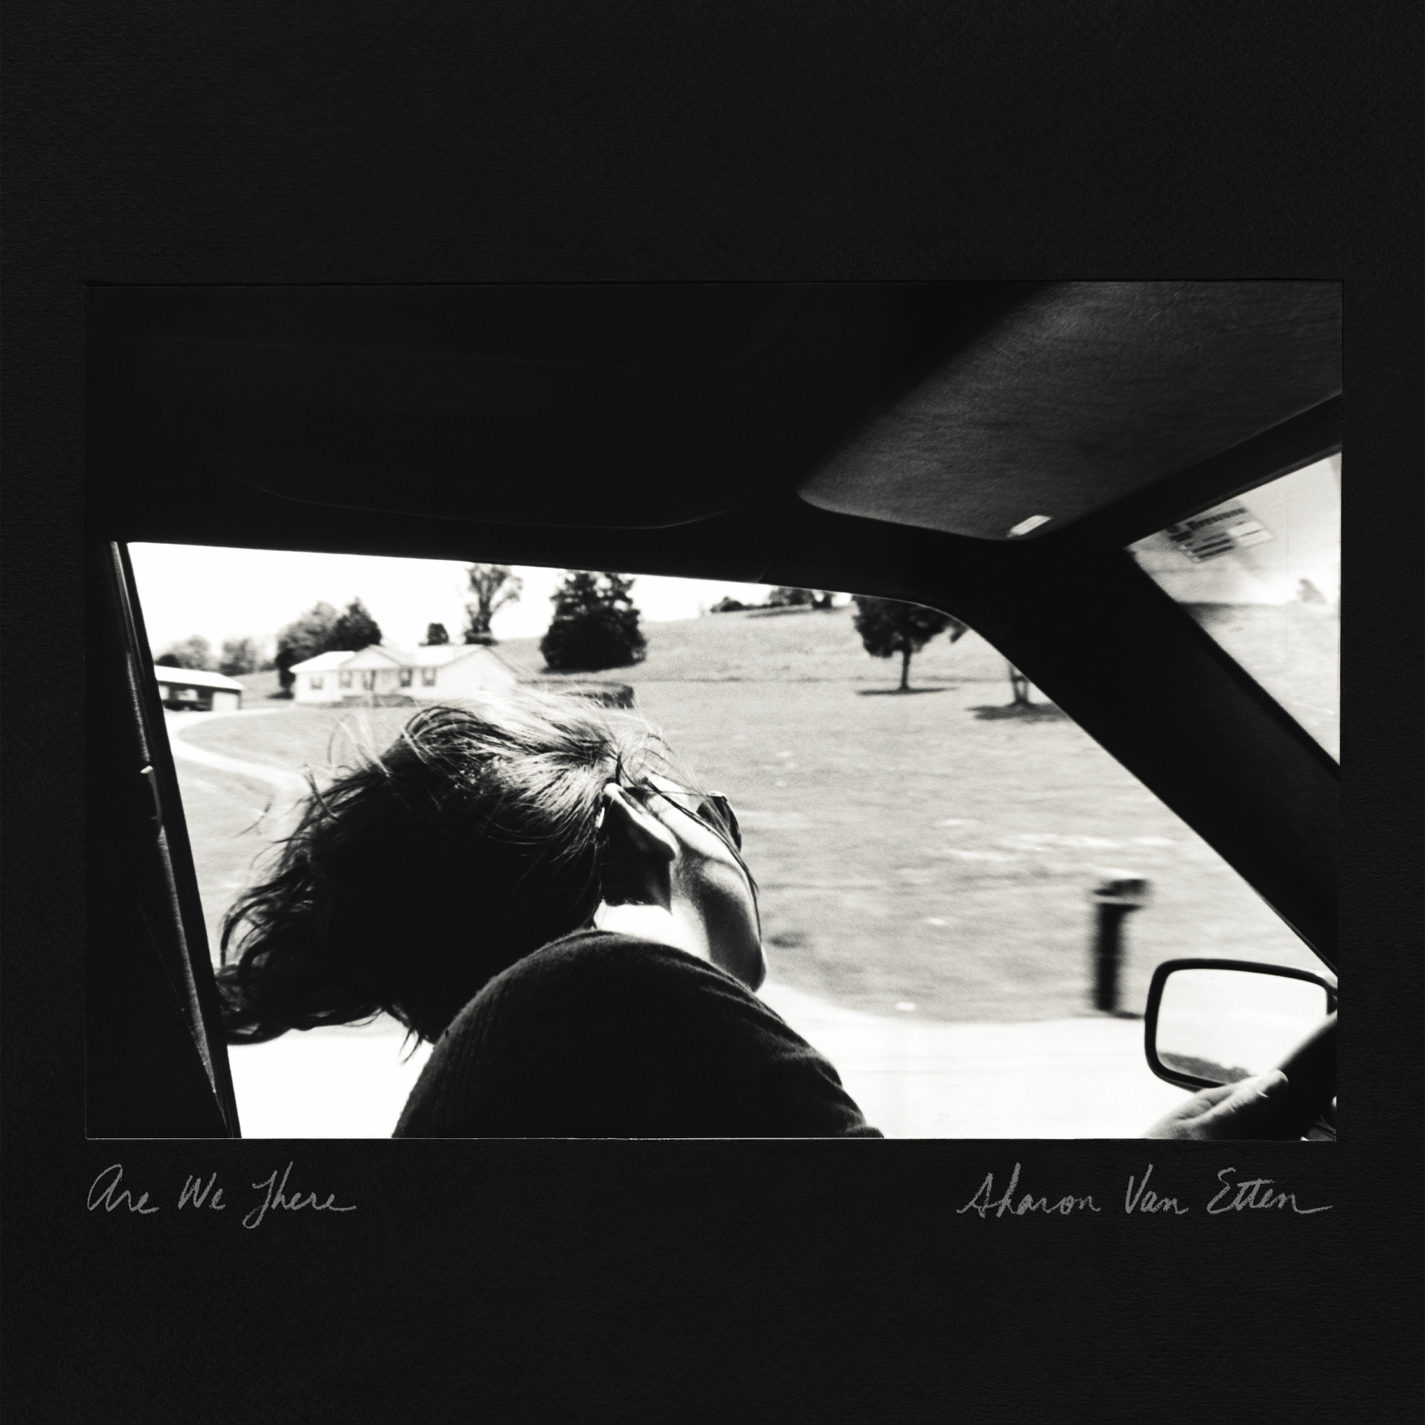 Sharon Van- Etten - Are We There